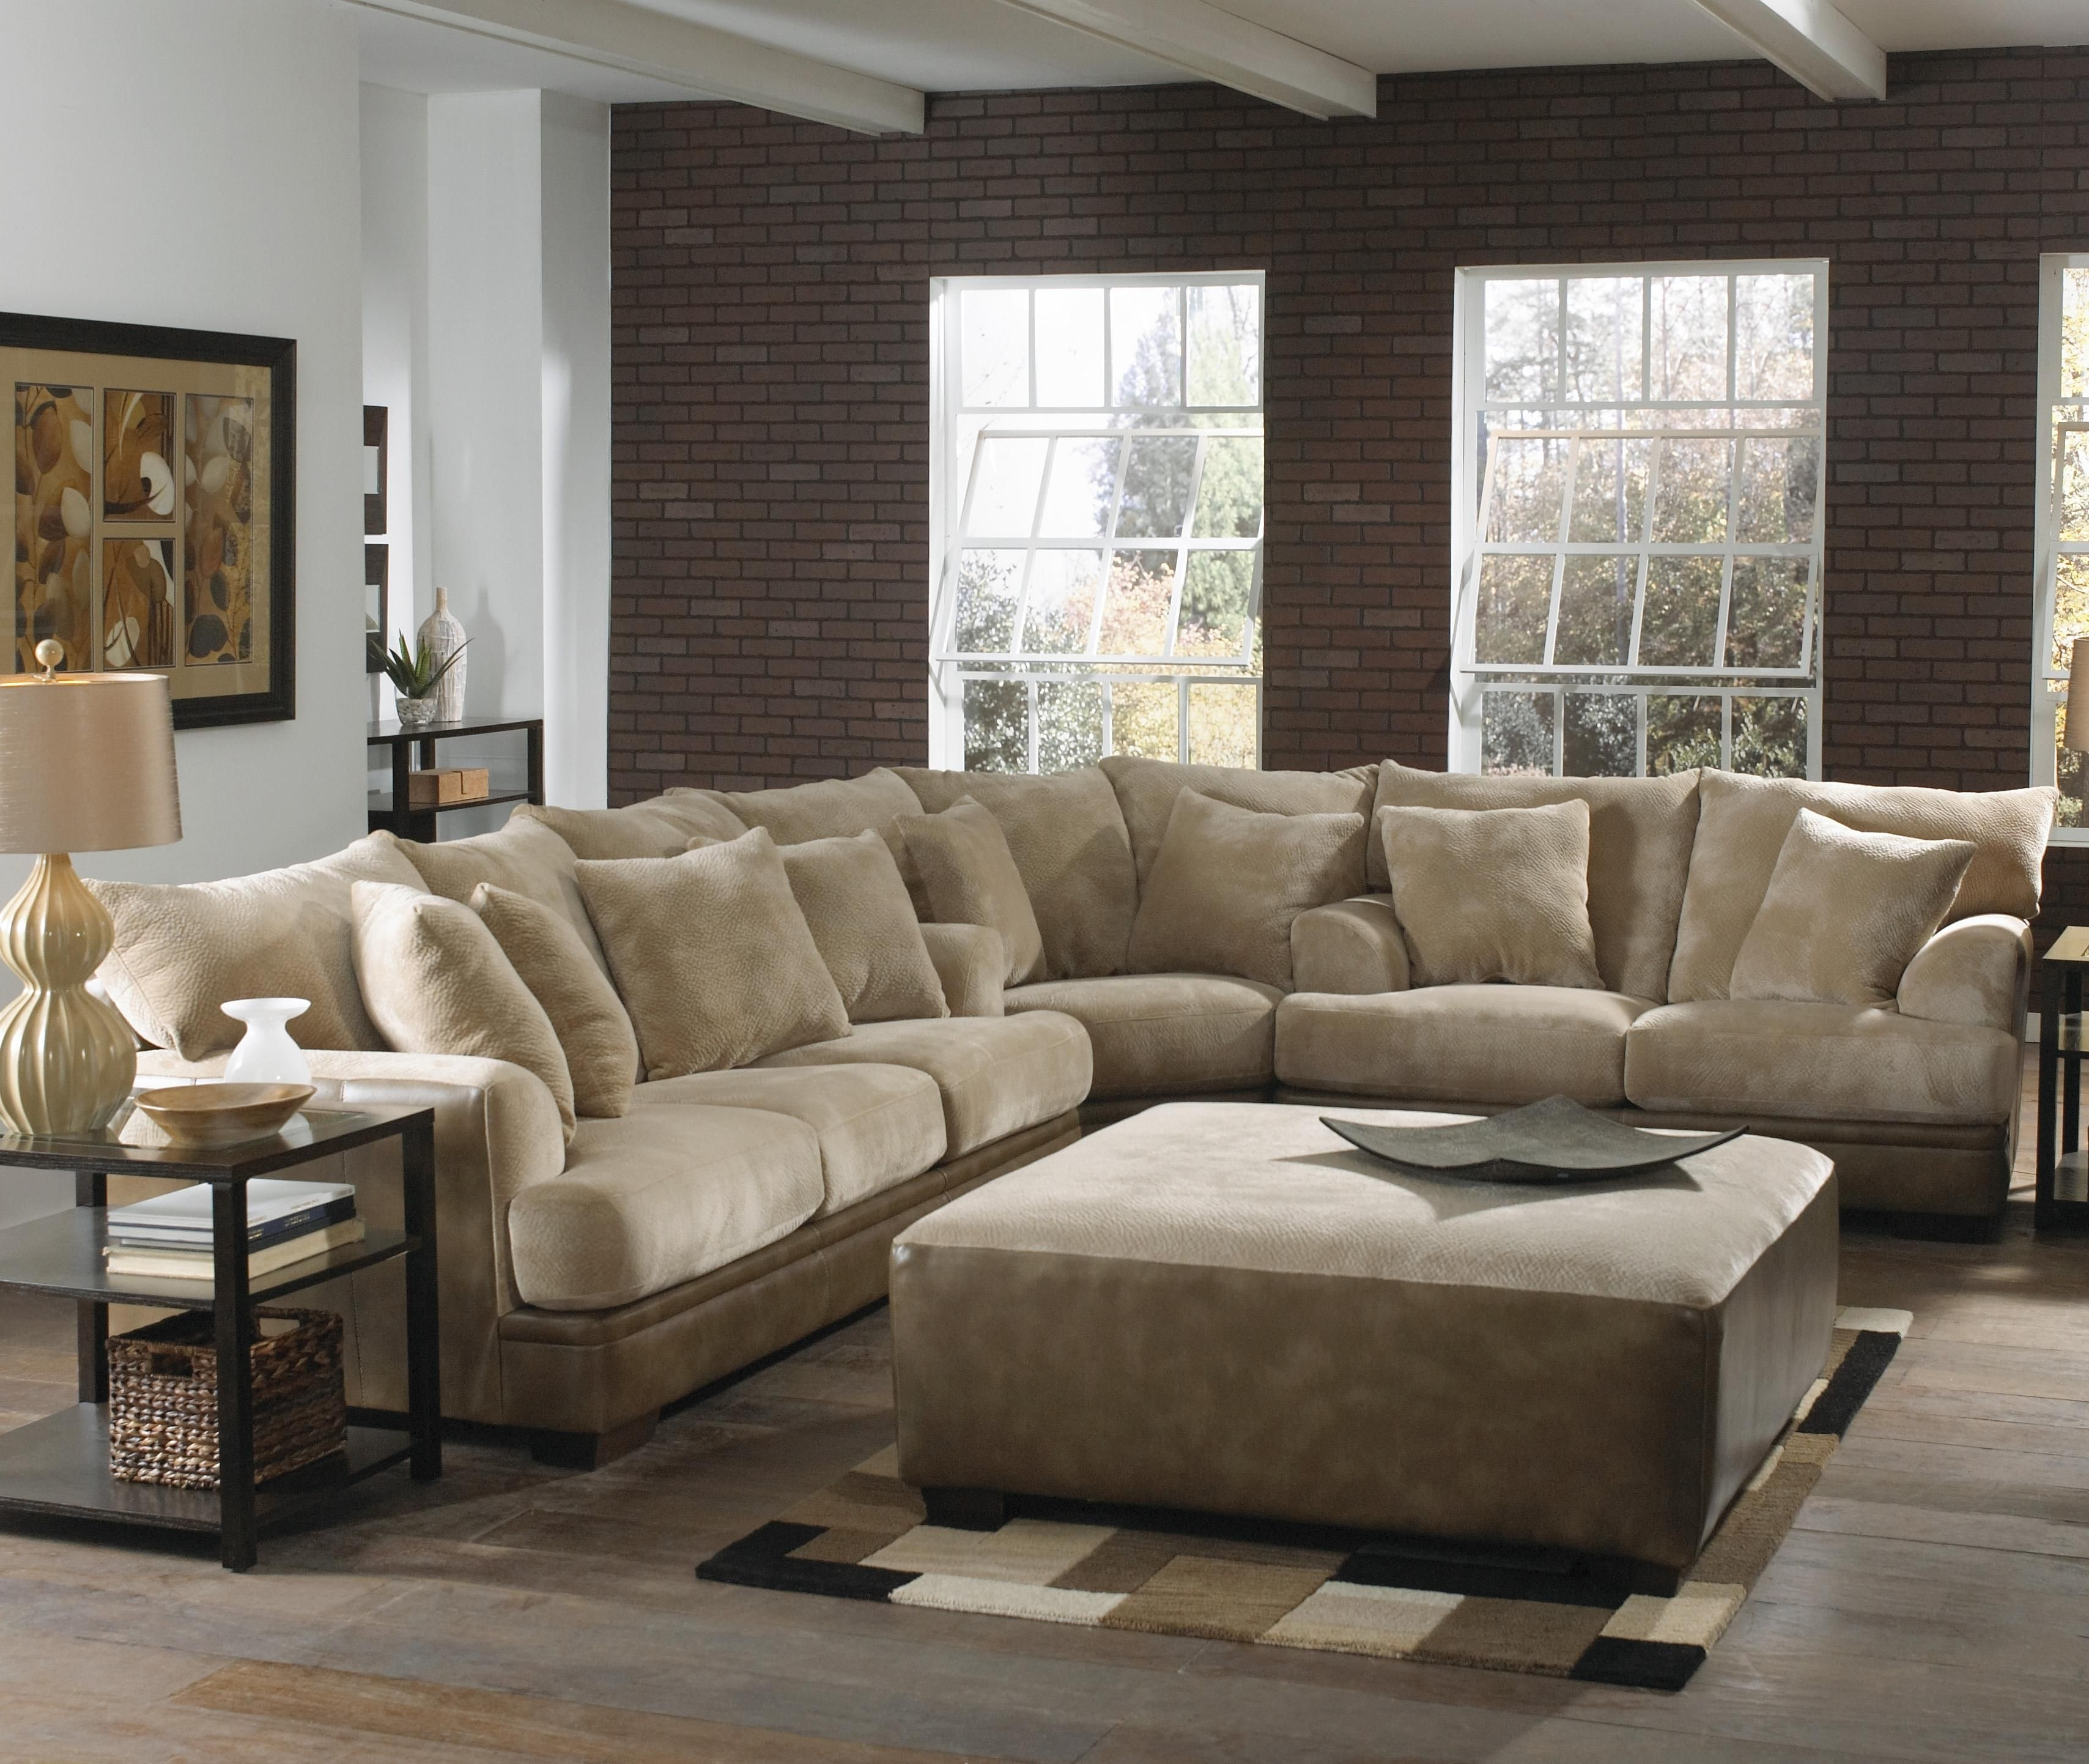 Barkley Large L Shaped Sectional Sofa With Right Side Loveseat Throughout Jackson Ms Sectional Sofas (Image 2 of 10)